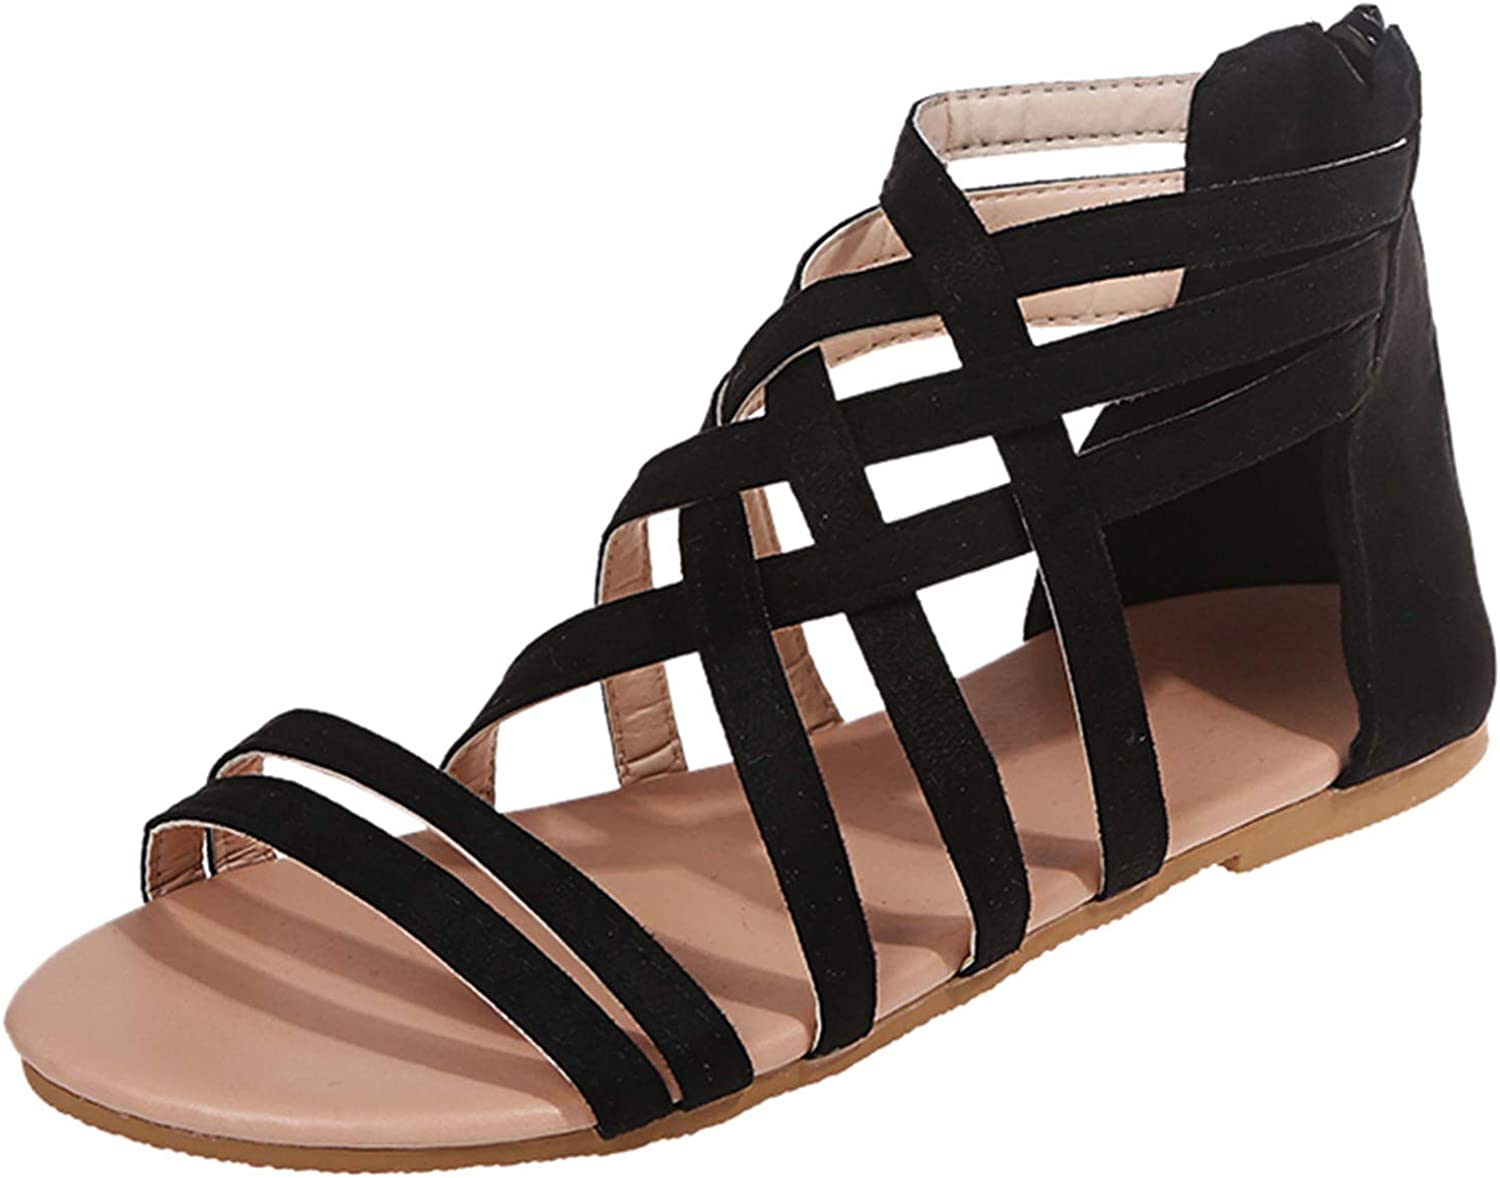 ZiSUGP Womens Comfort Walking Clearance SALE Limited time Flat Sandals Bohemia famous Summer Beach